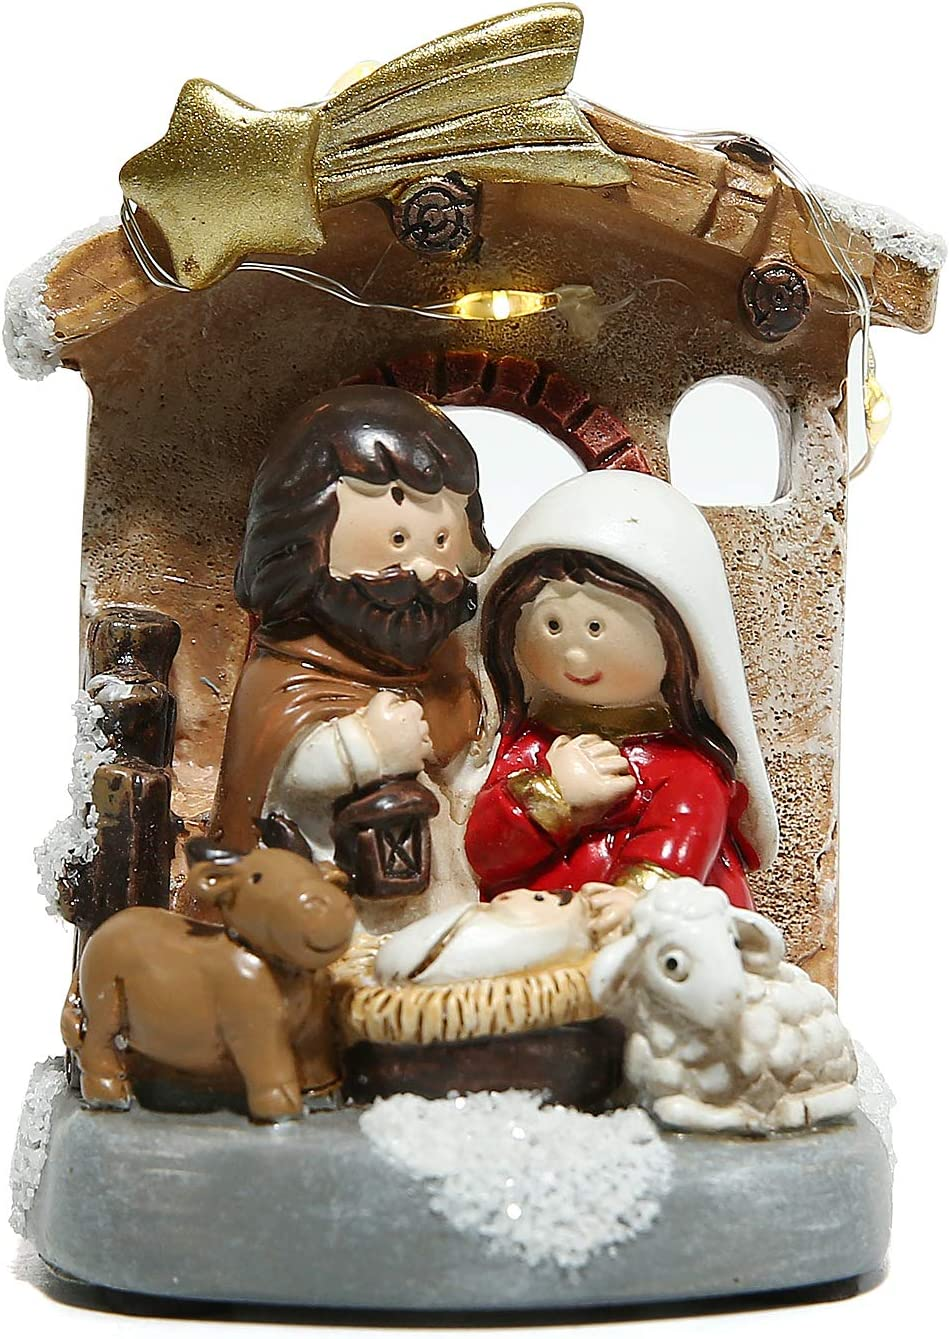 Holy Family Figurine Nativity Sets in Stable for Indoor Decoration with Manger Scene